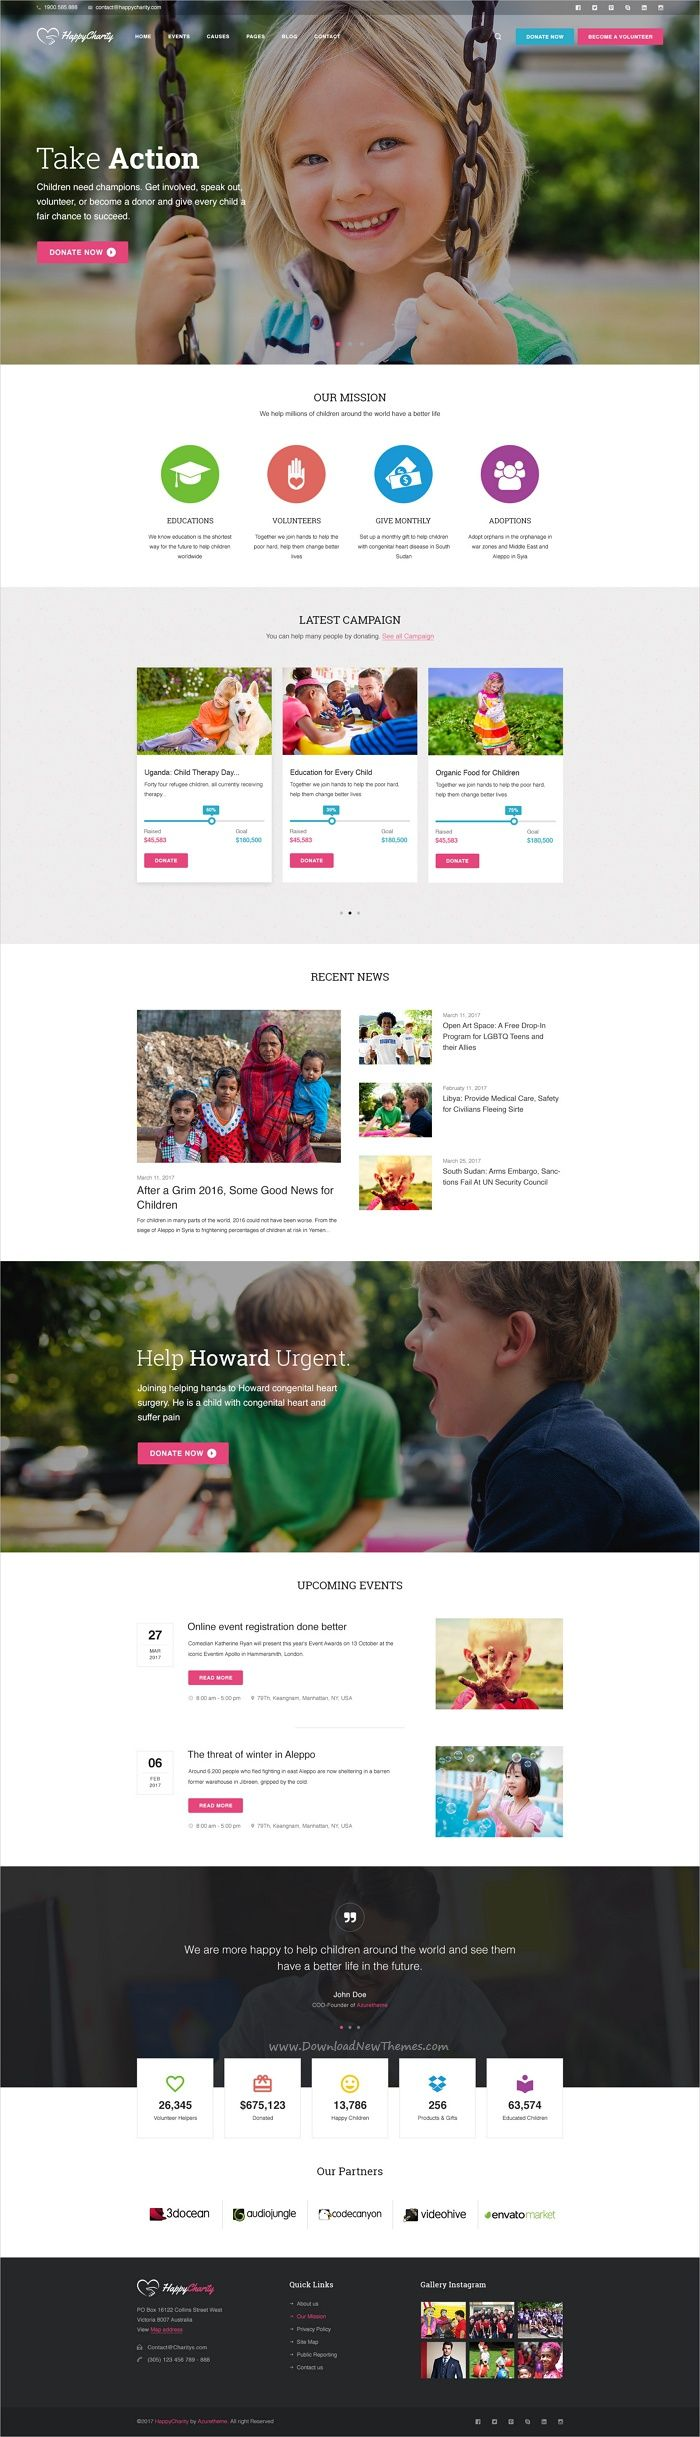 HappyCharityis The Best Multipurpose #Nonprofit Photoshop #Template,  Perfect Fit For #webmaster Charity  Ngo Templates